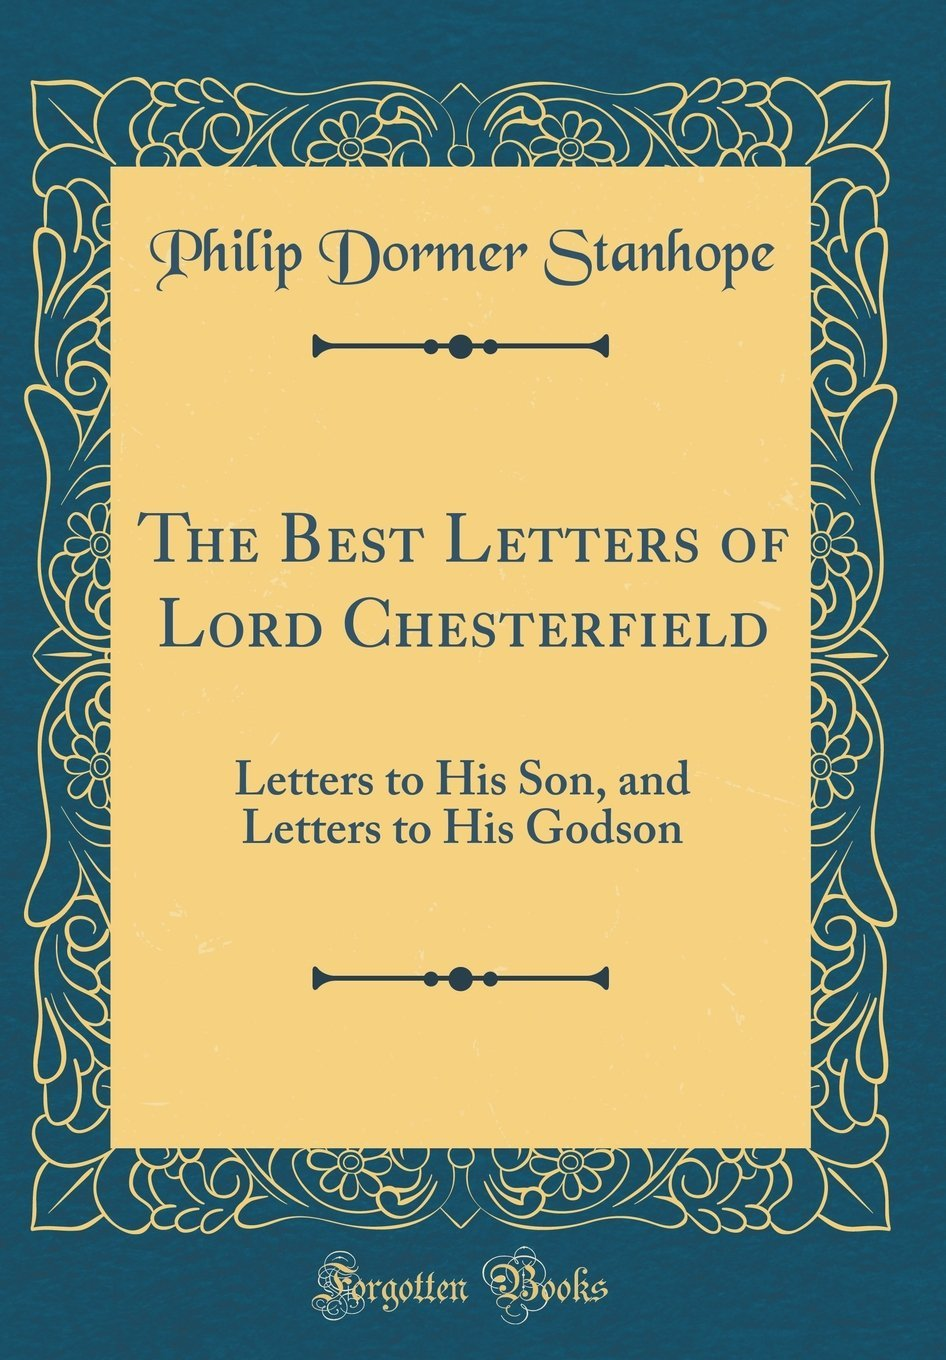 Amazon.com: The Best Letters of Lord Chesterfield: Letters to His